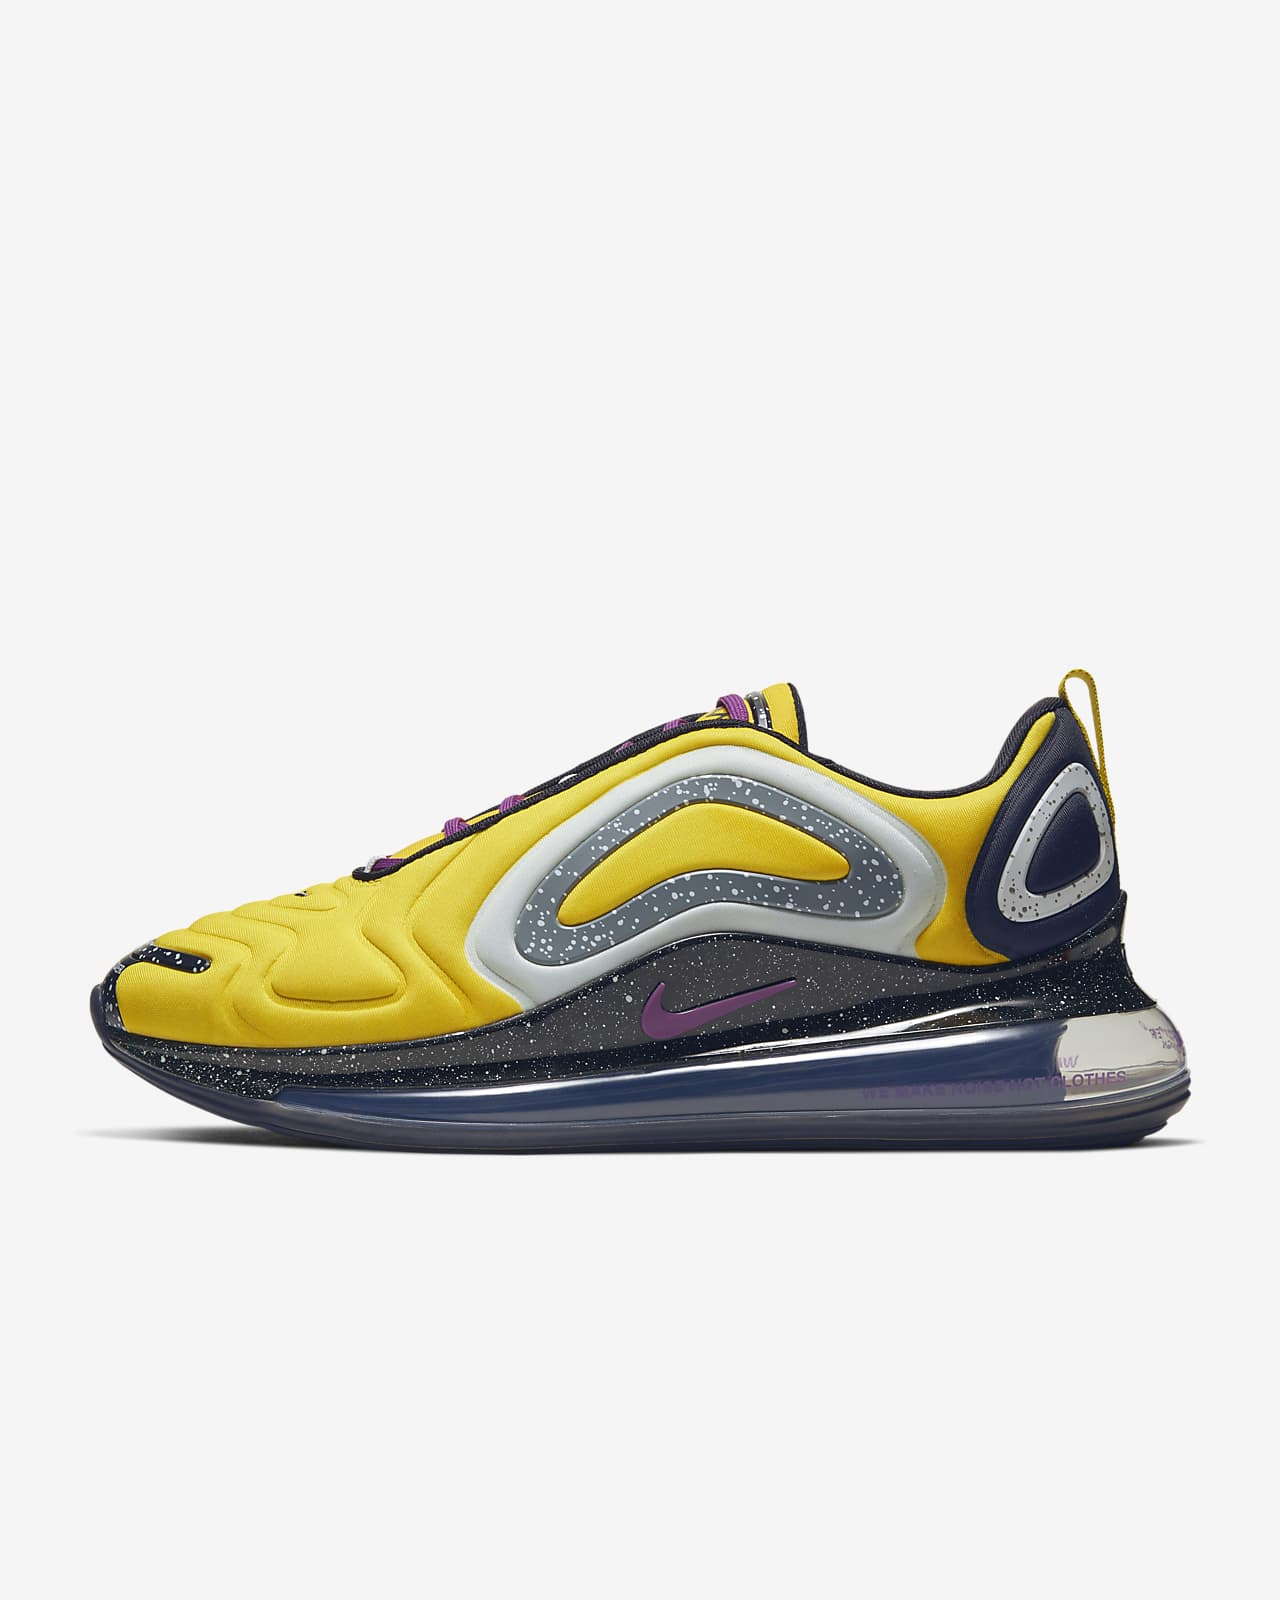 Nike x Undercover Air Max 720 Shoes